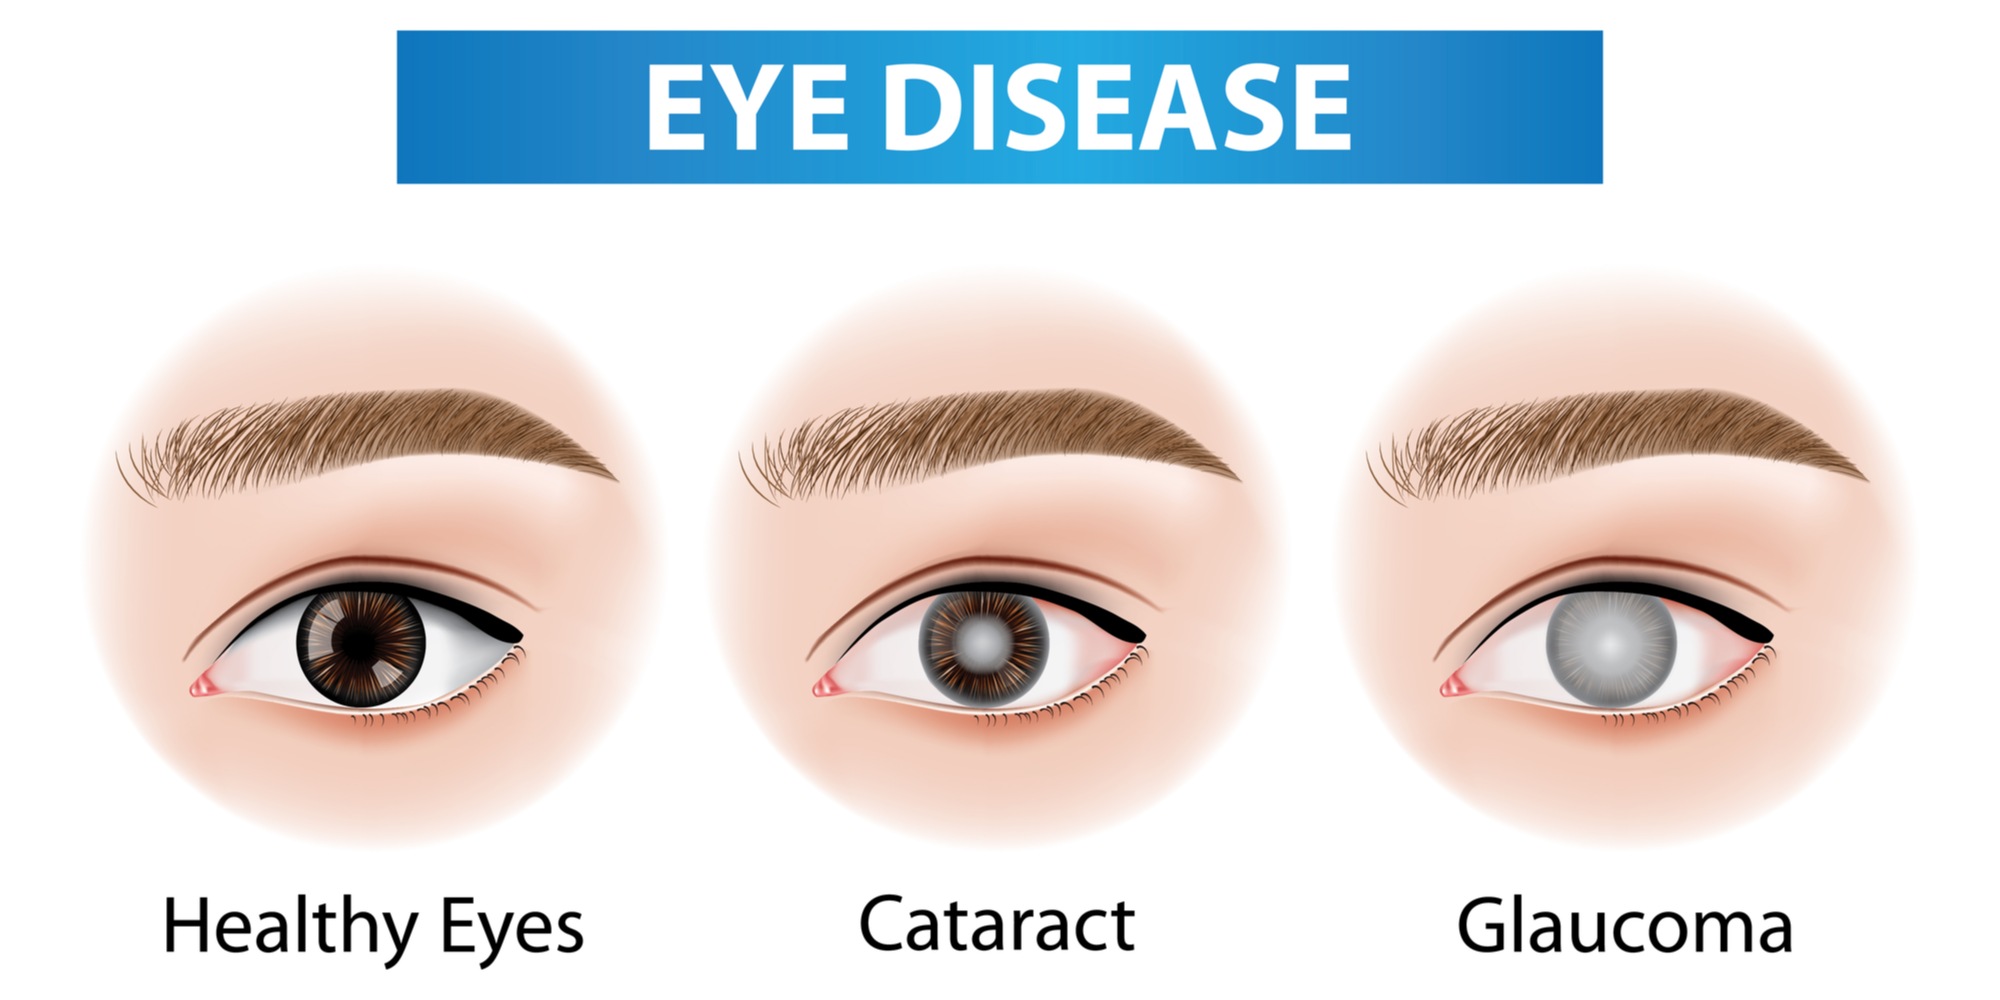 What Are the Most Common Eye Diseases?